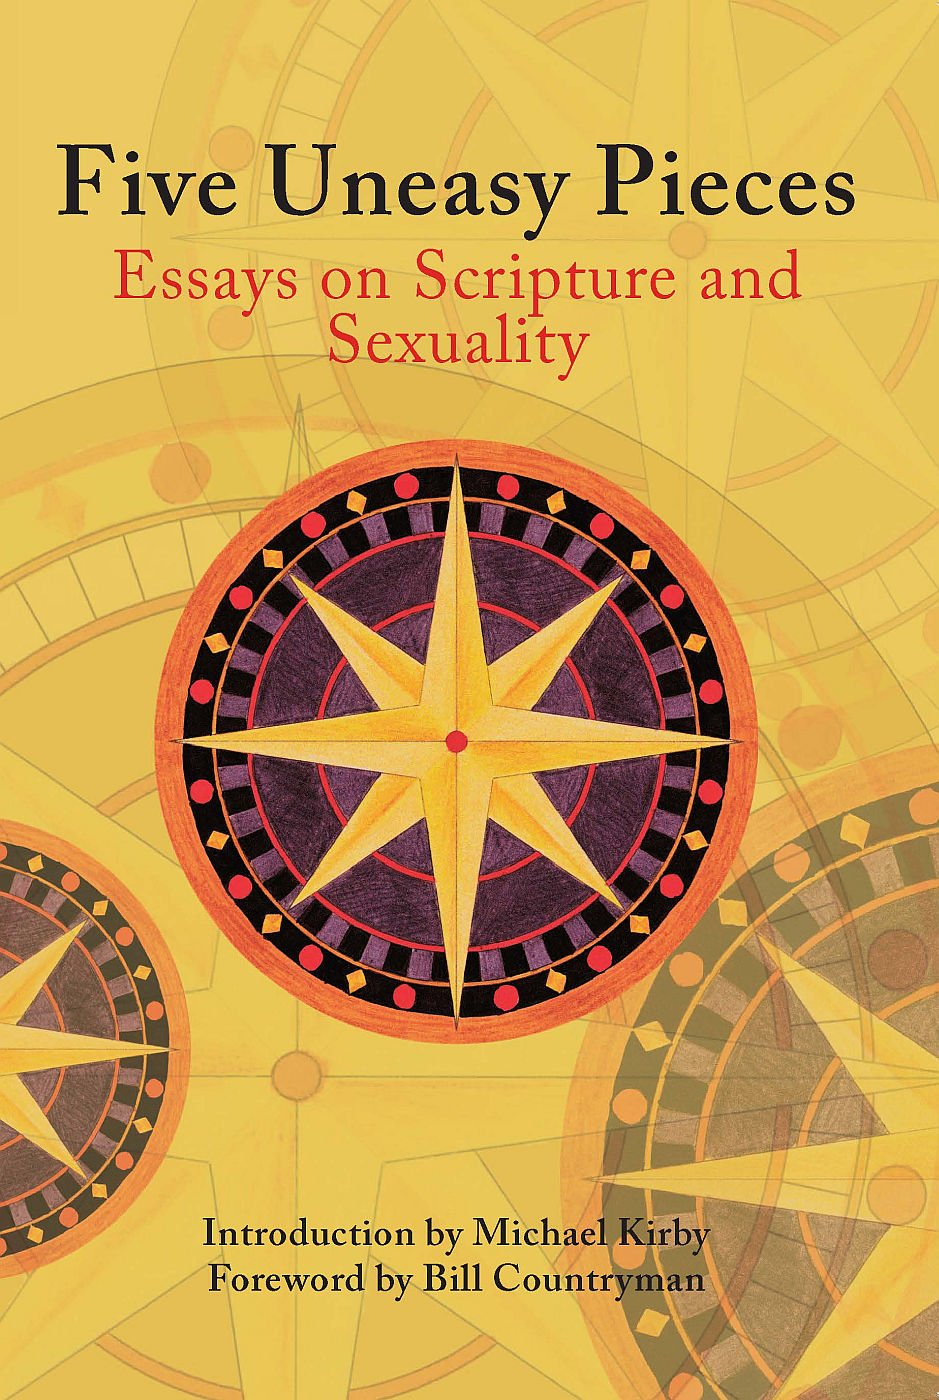 five uneasy pieces essays on scripture and sexuality michael five uneasy pieces essays on scripture and sexuality michael kirby 9781921817243 amazon com books